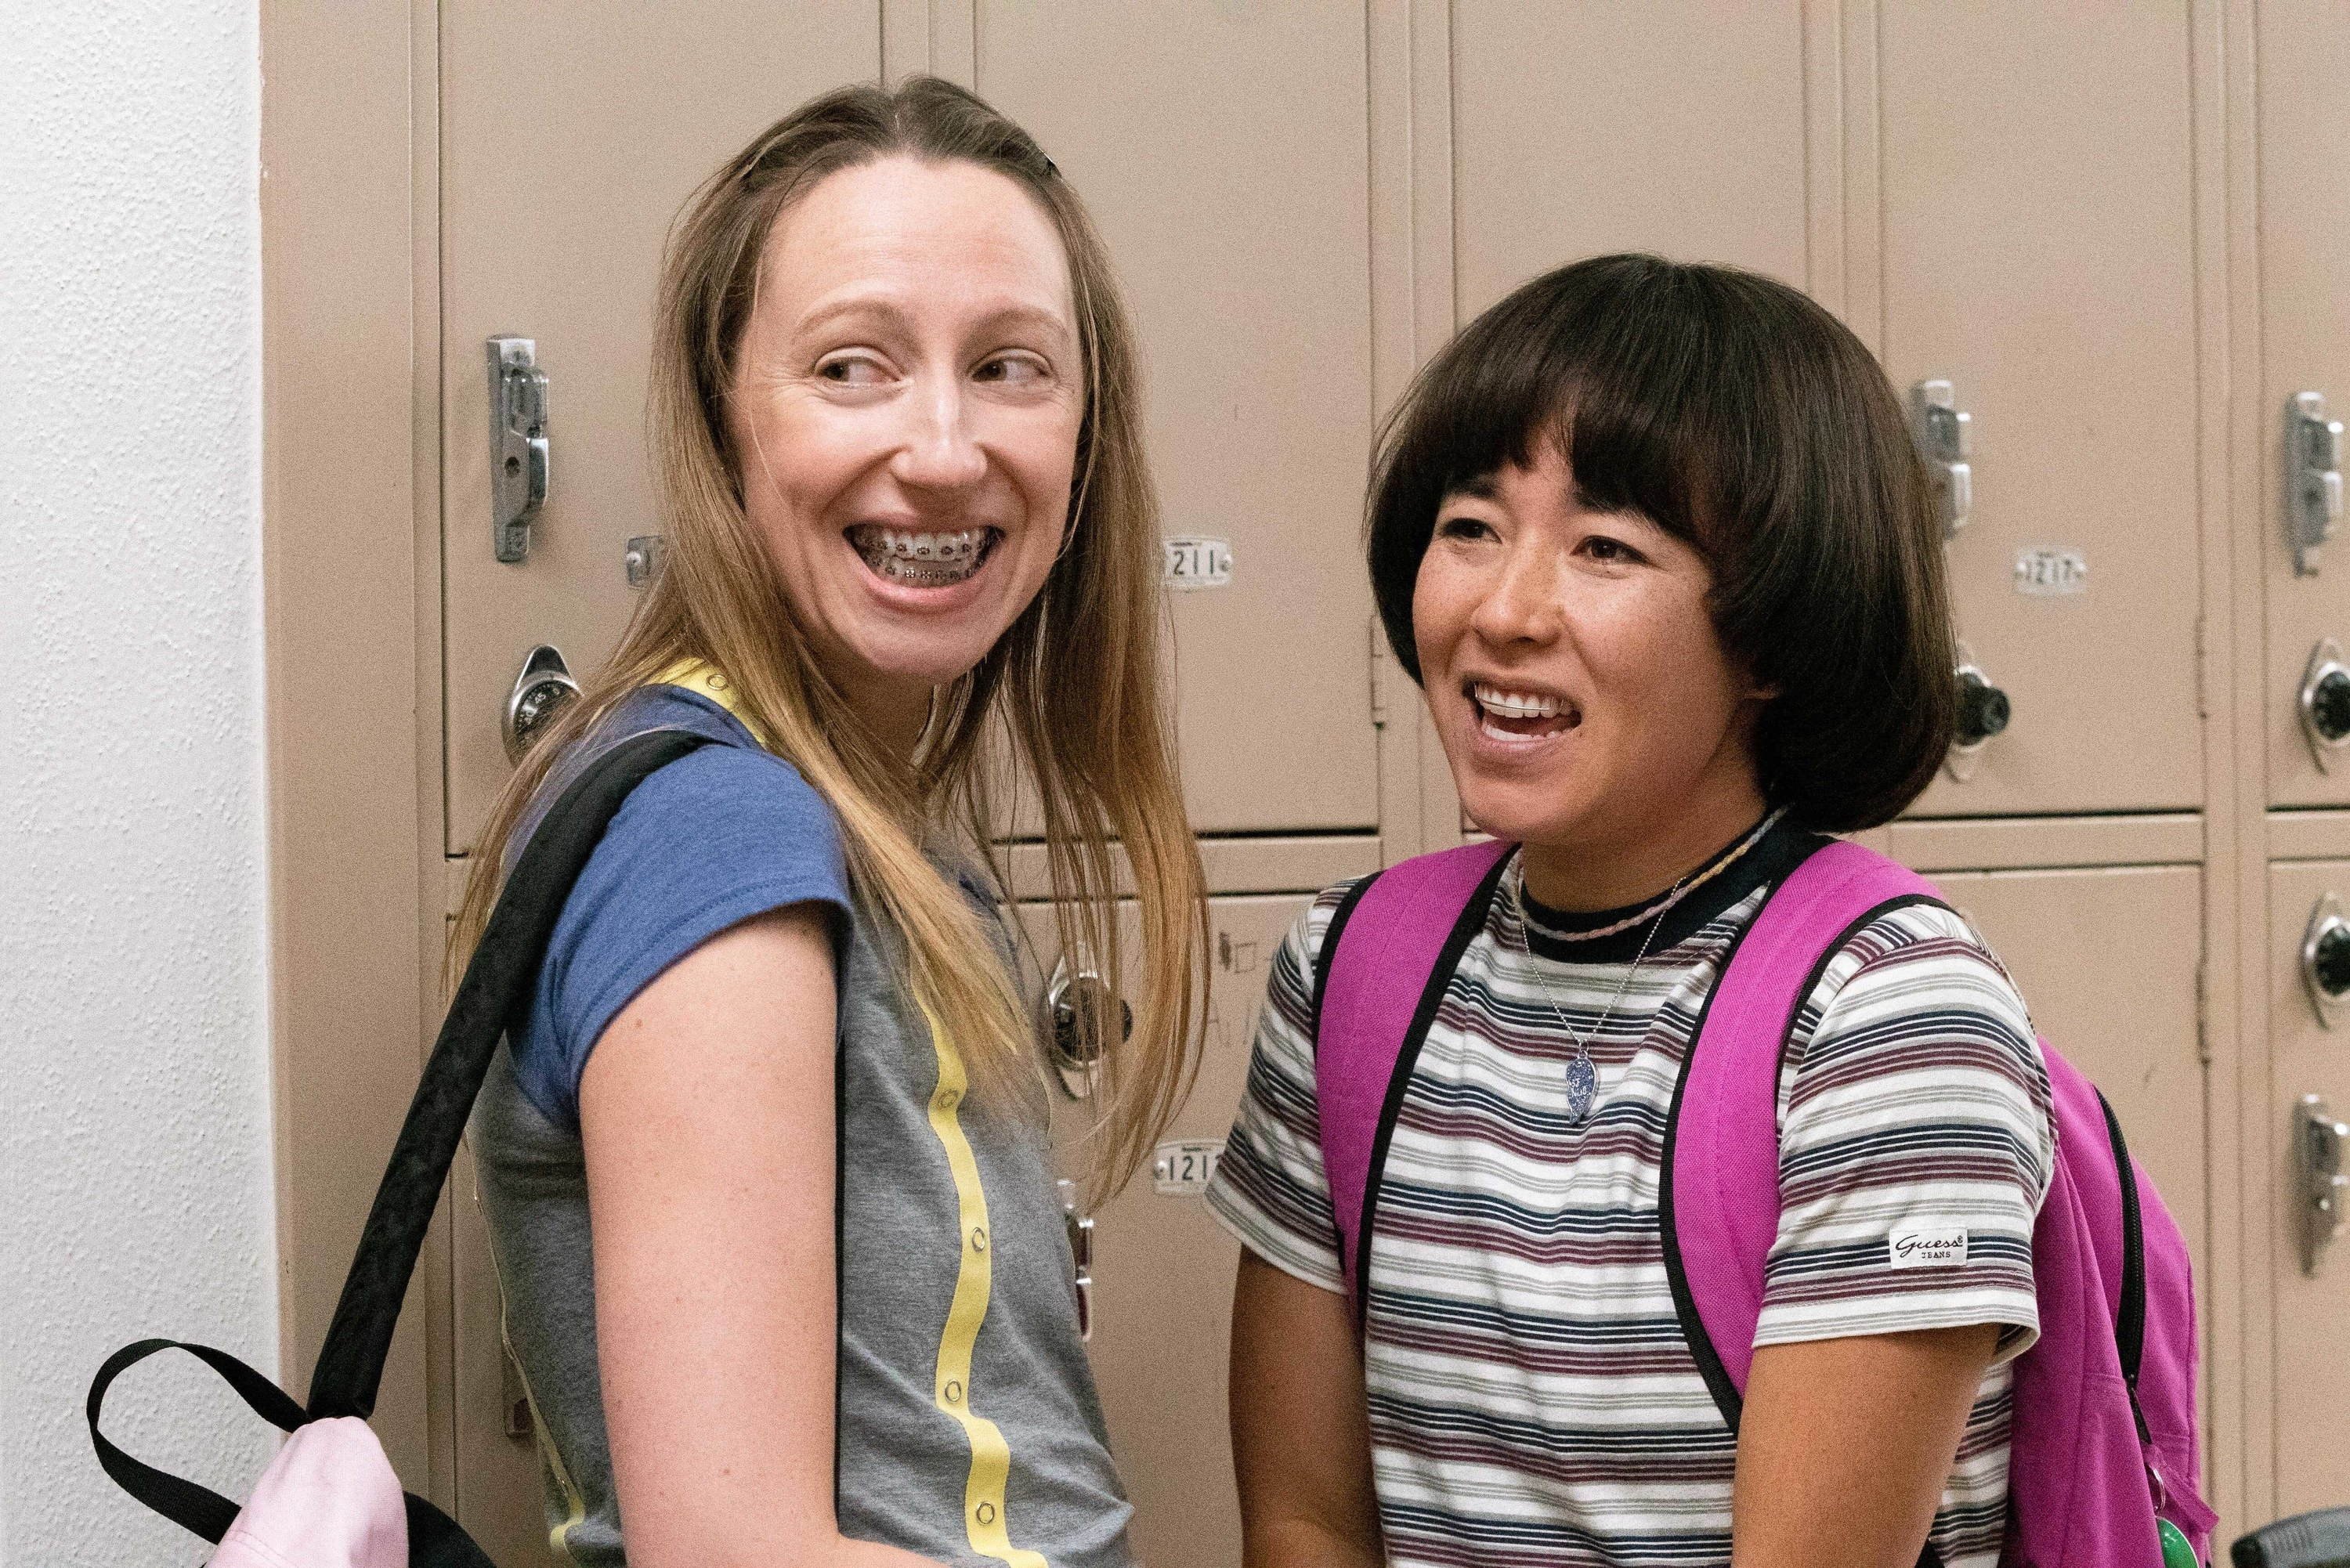 Anna Konkle and Maya Erskine in PEN15